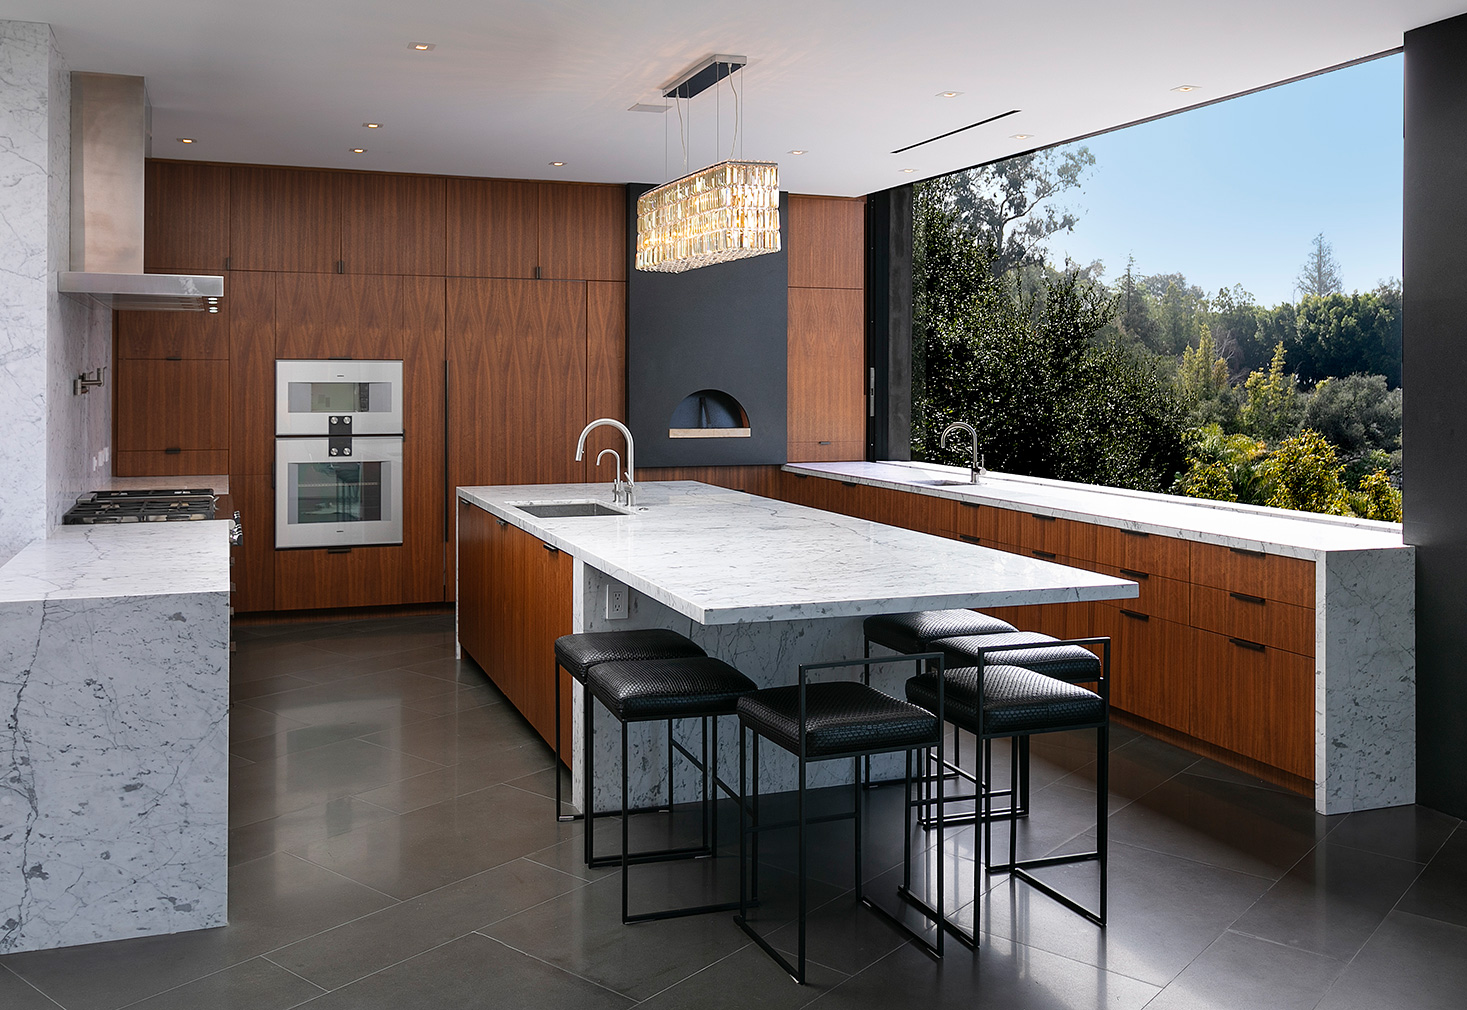 Explore an award-winning 'upside down' canyon home in Beverly Hills